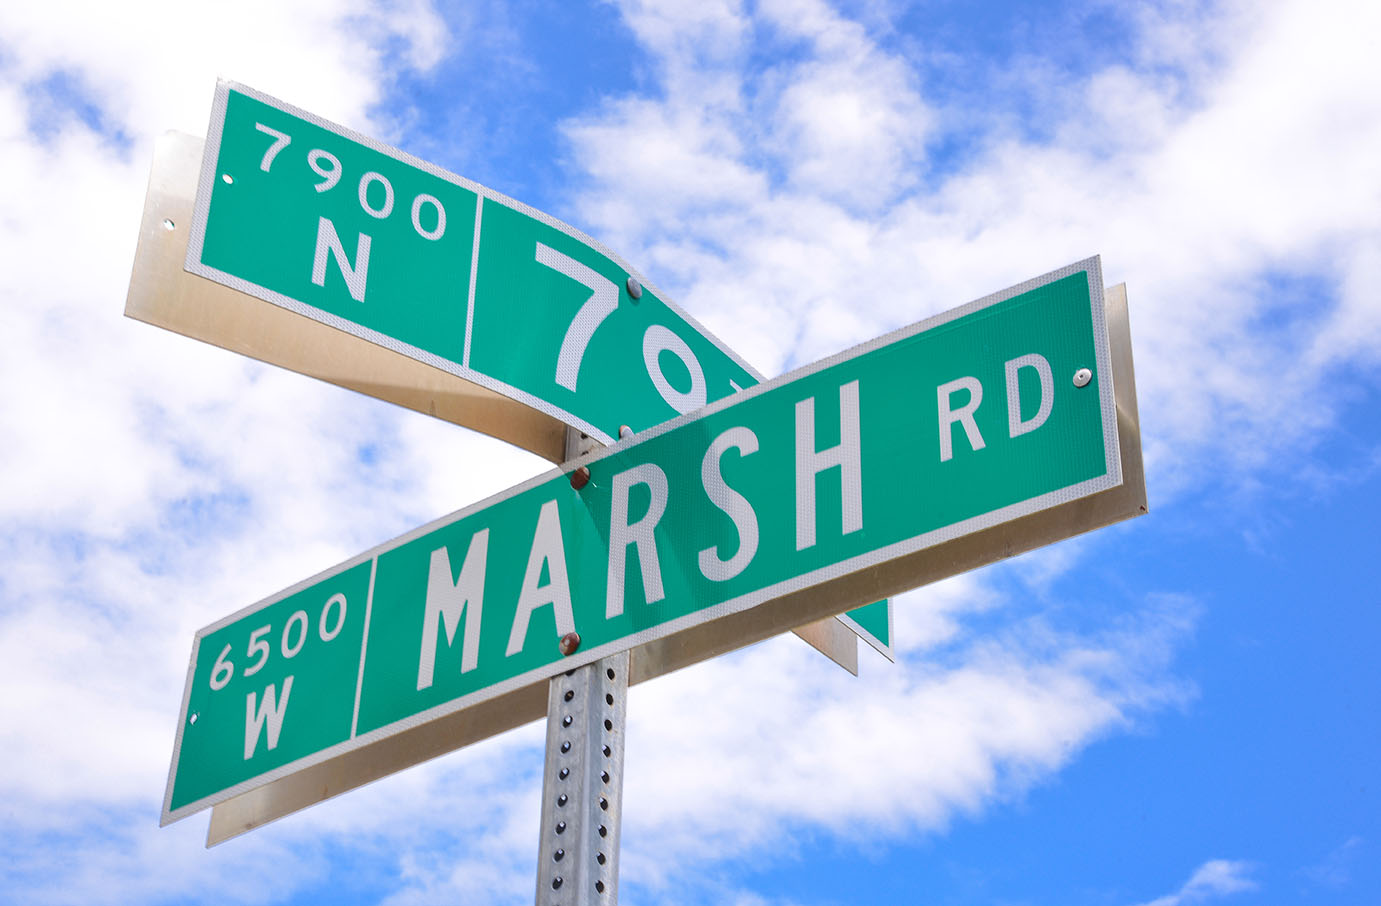 What's In a Name: Marsh Road